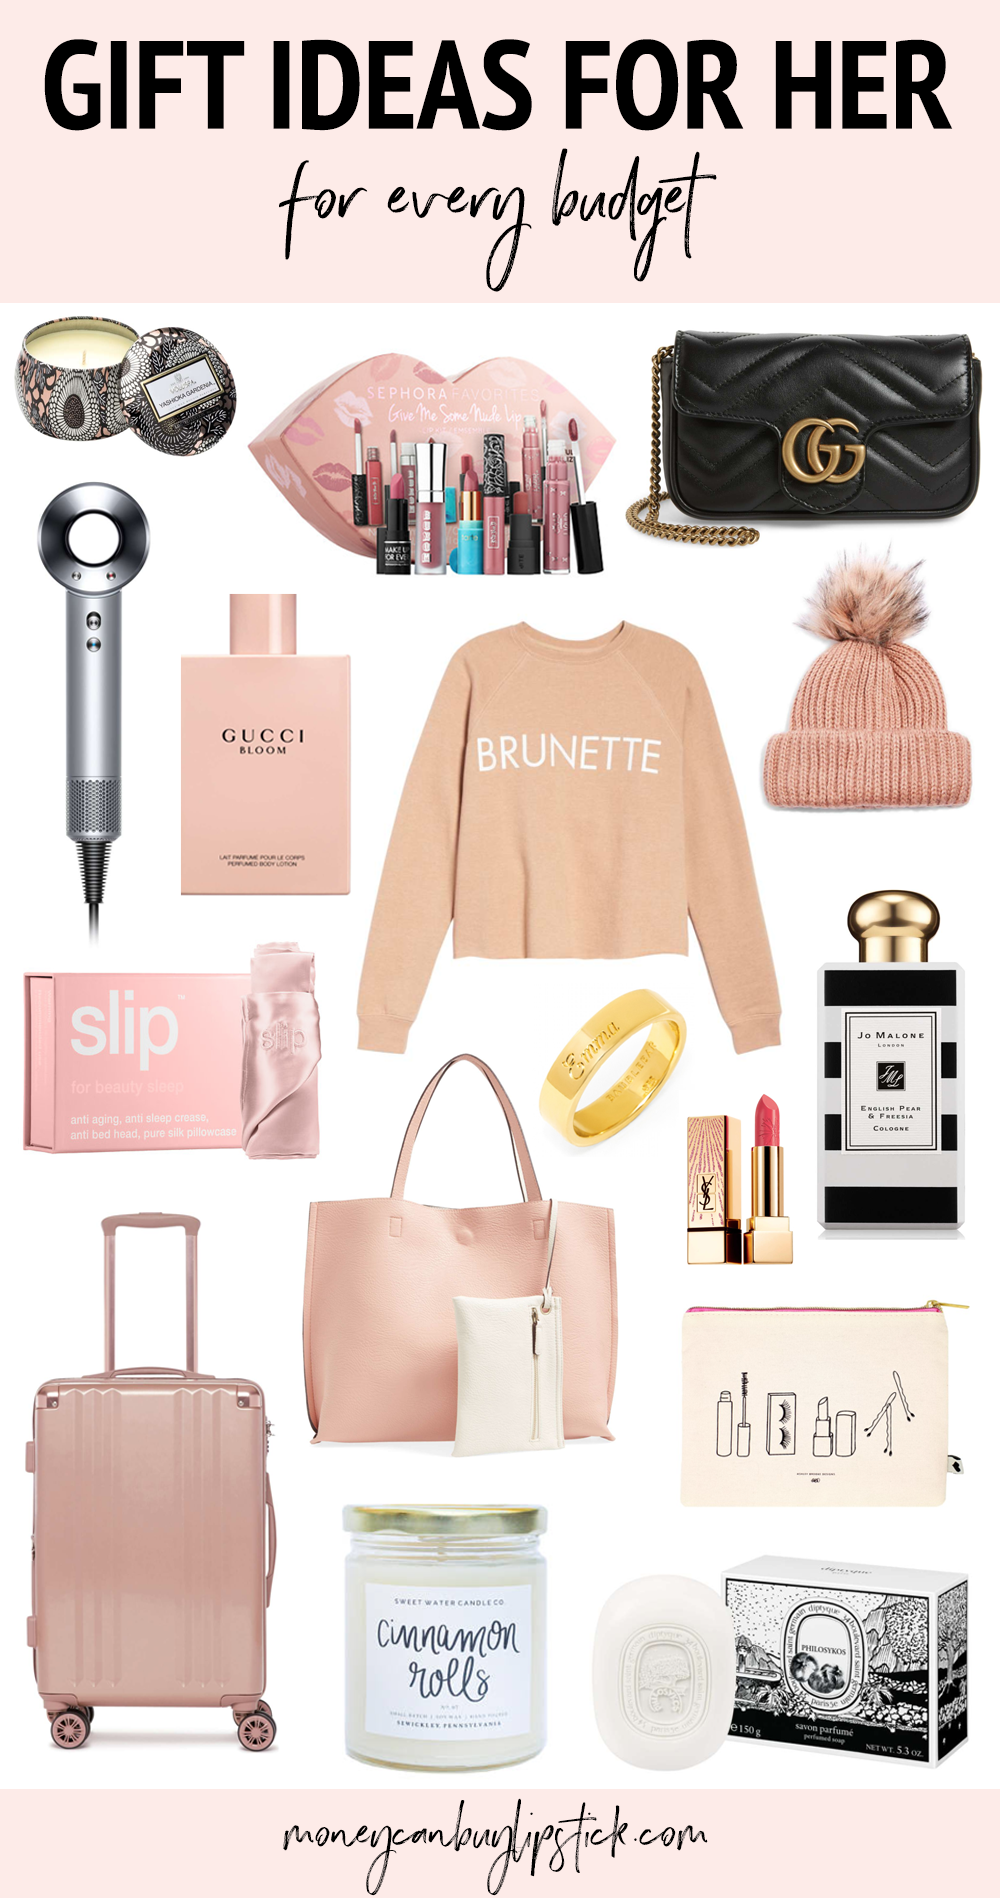 Christmas Gift Ideas For Her.The Ultimate Gift Guide Money Can Buy Lipstick Christmas